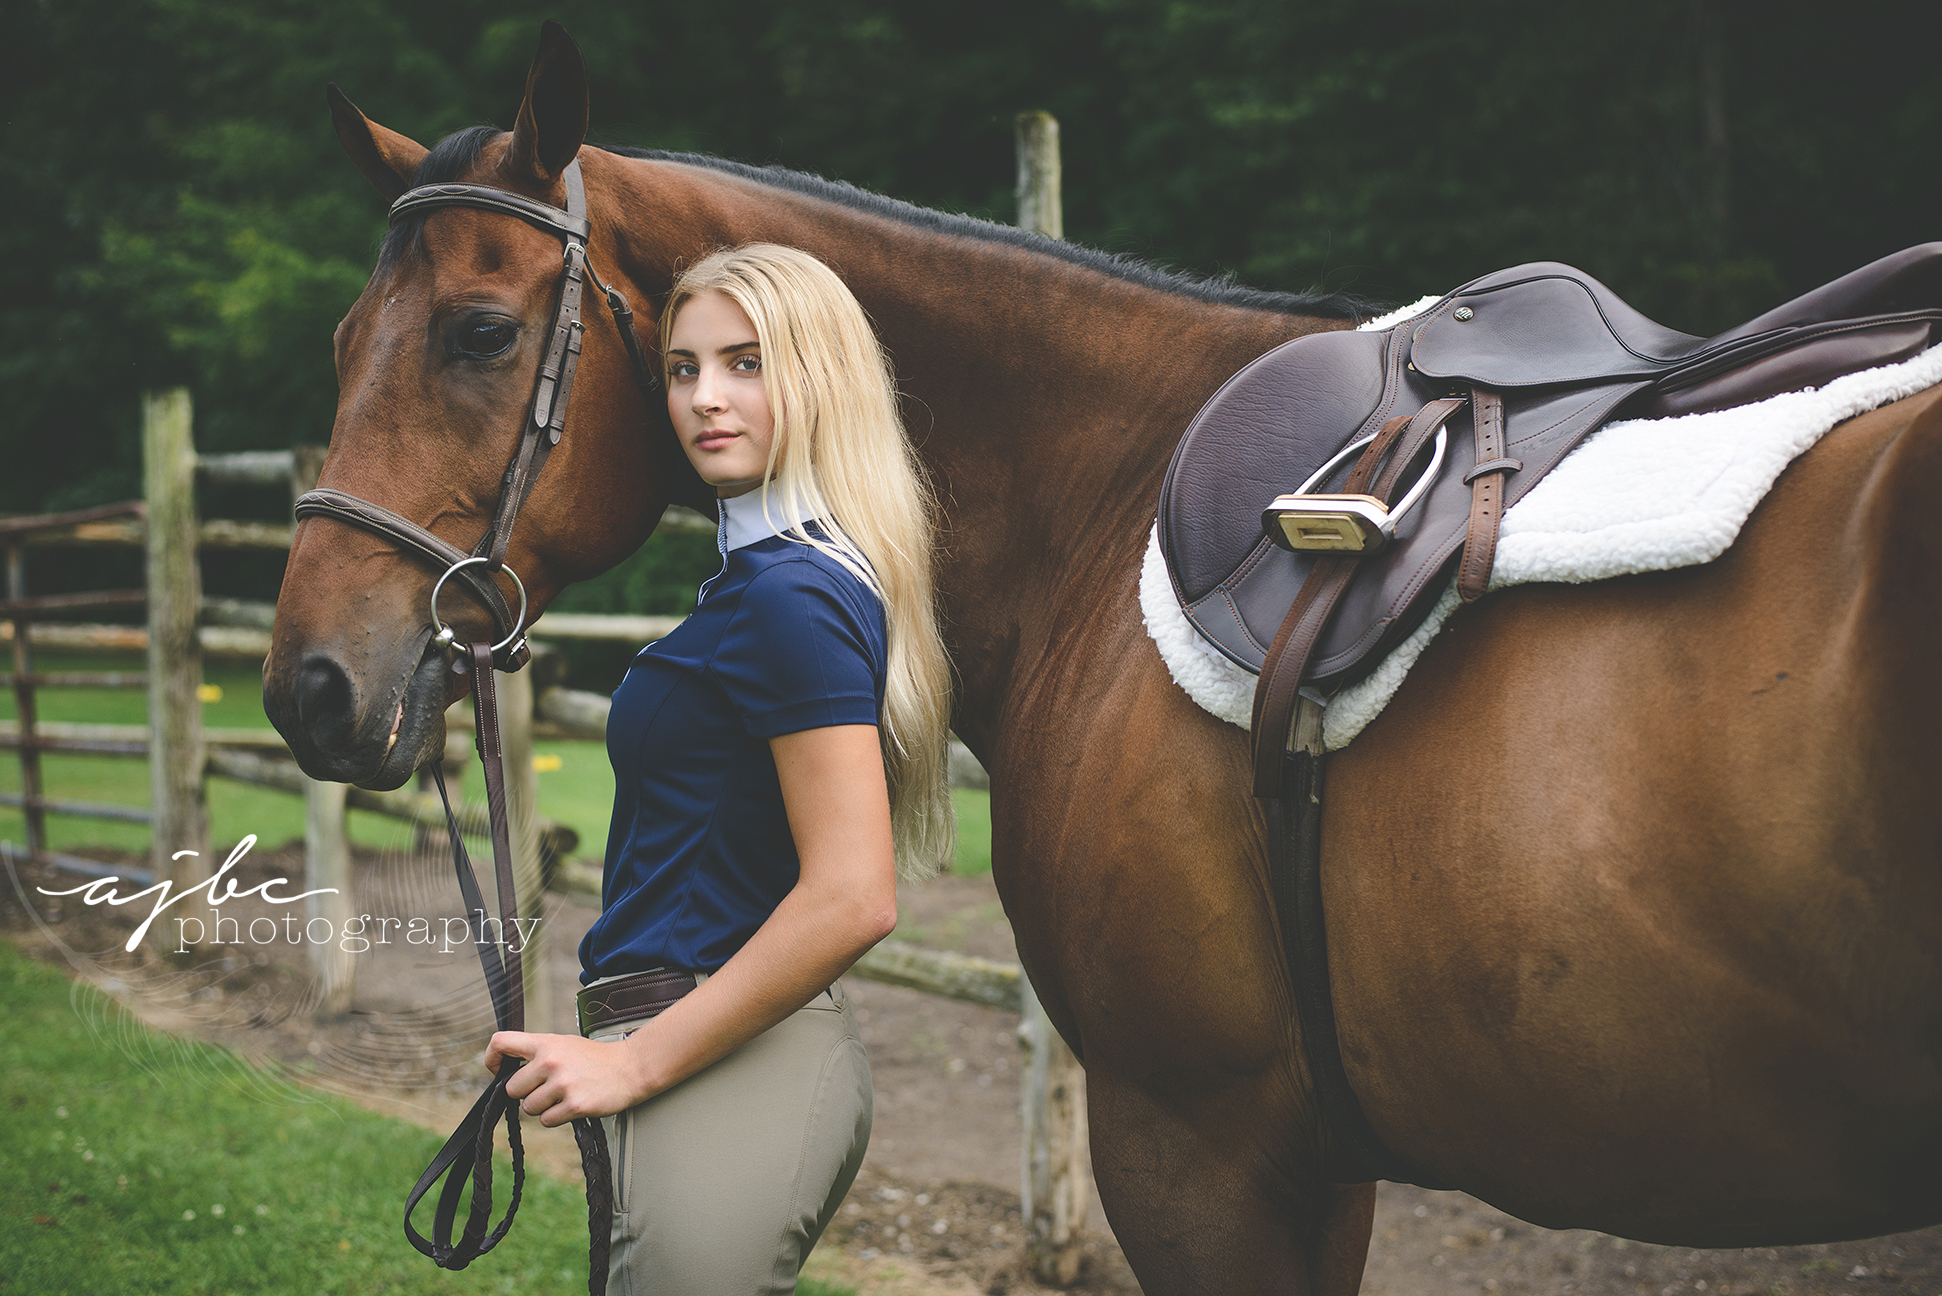 raulf lauren fashion senior portraits with her horse michigan equestrian.jpg